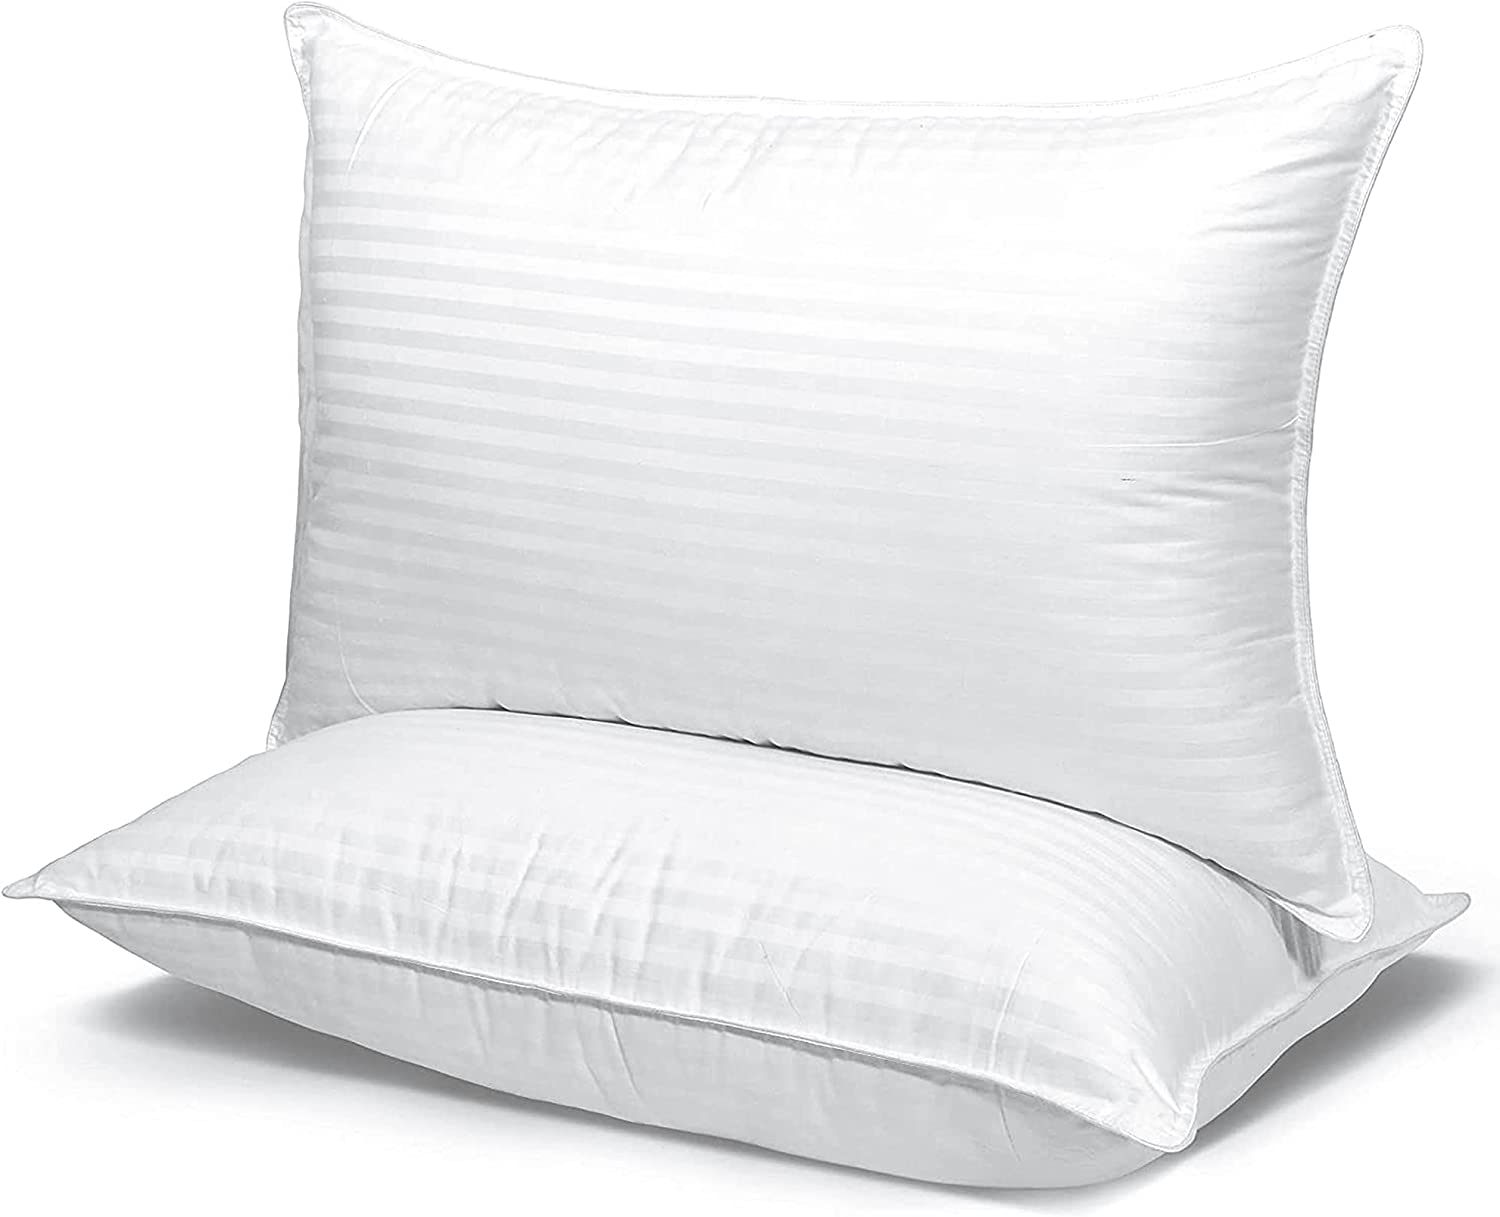 Bed Pillows for Sleeping - King Size 36 Sale Special Price of Inches Ranking TOP18 x Set 20 2